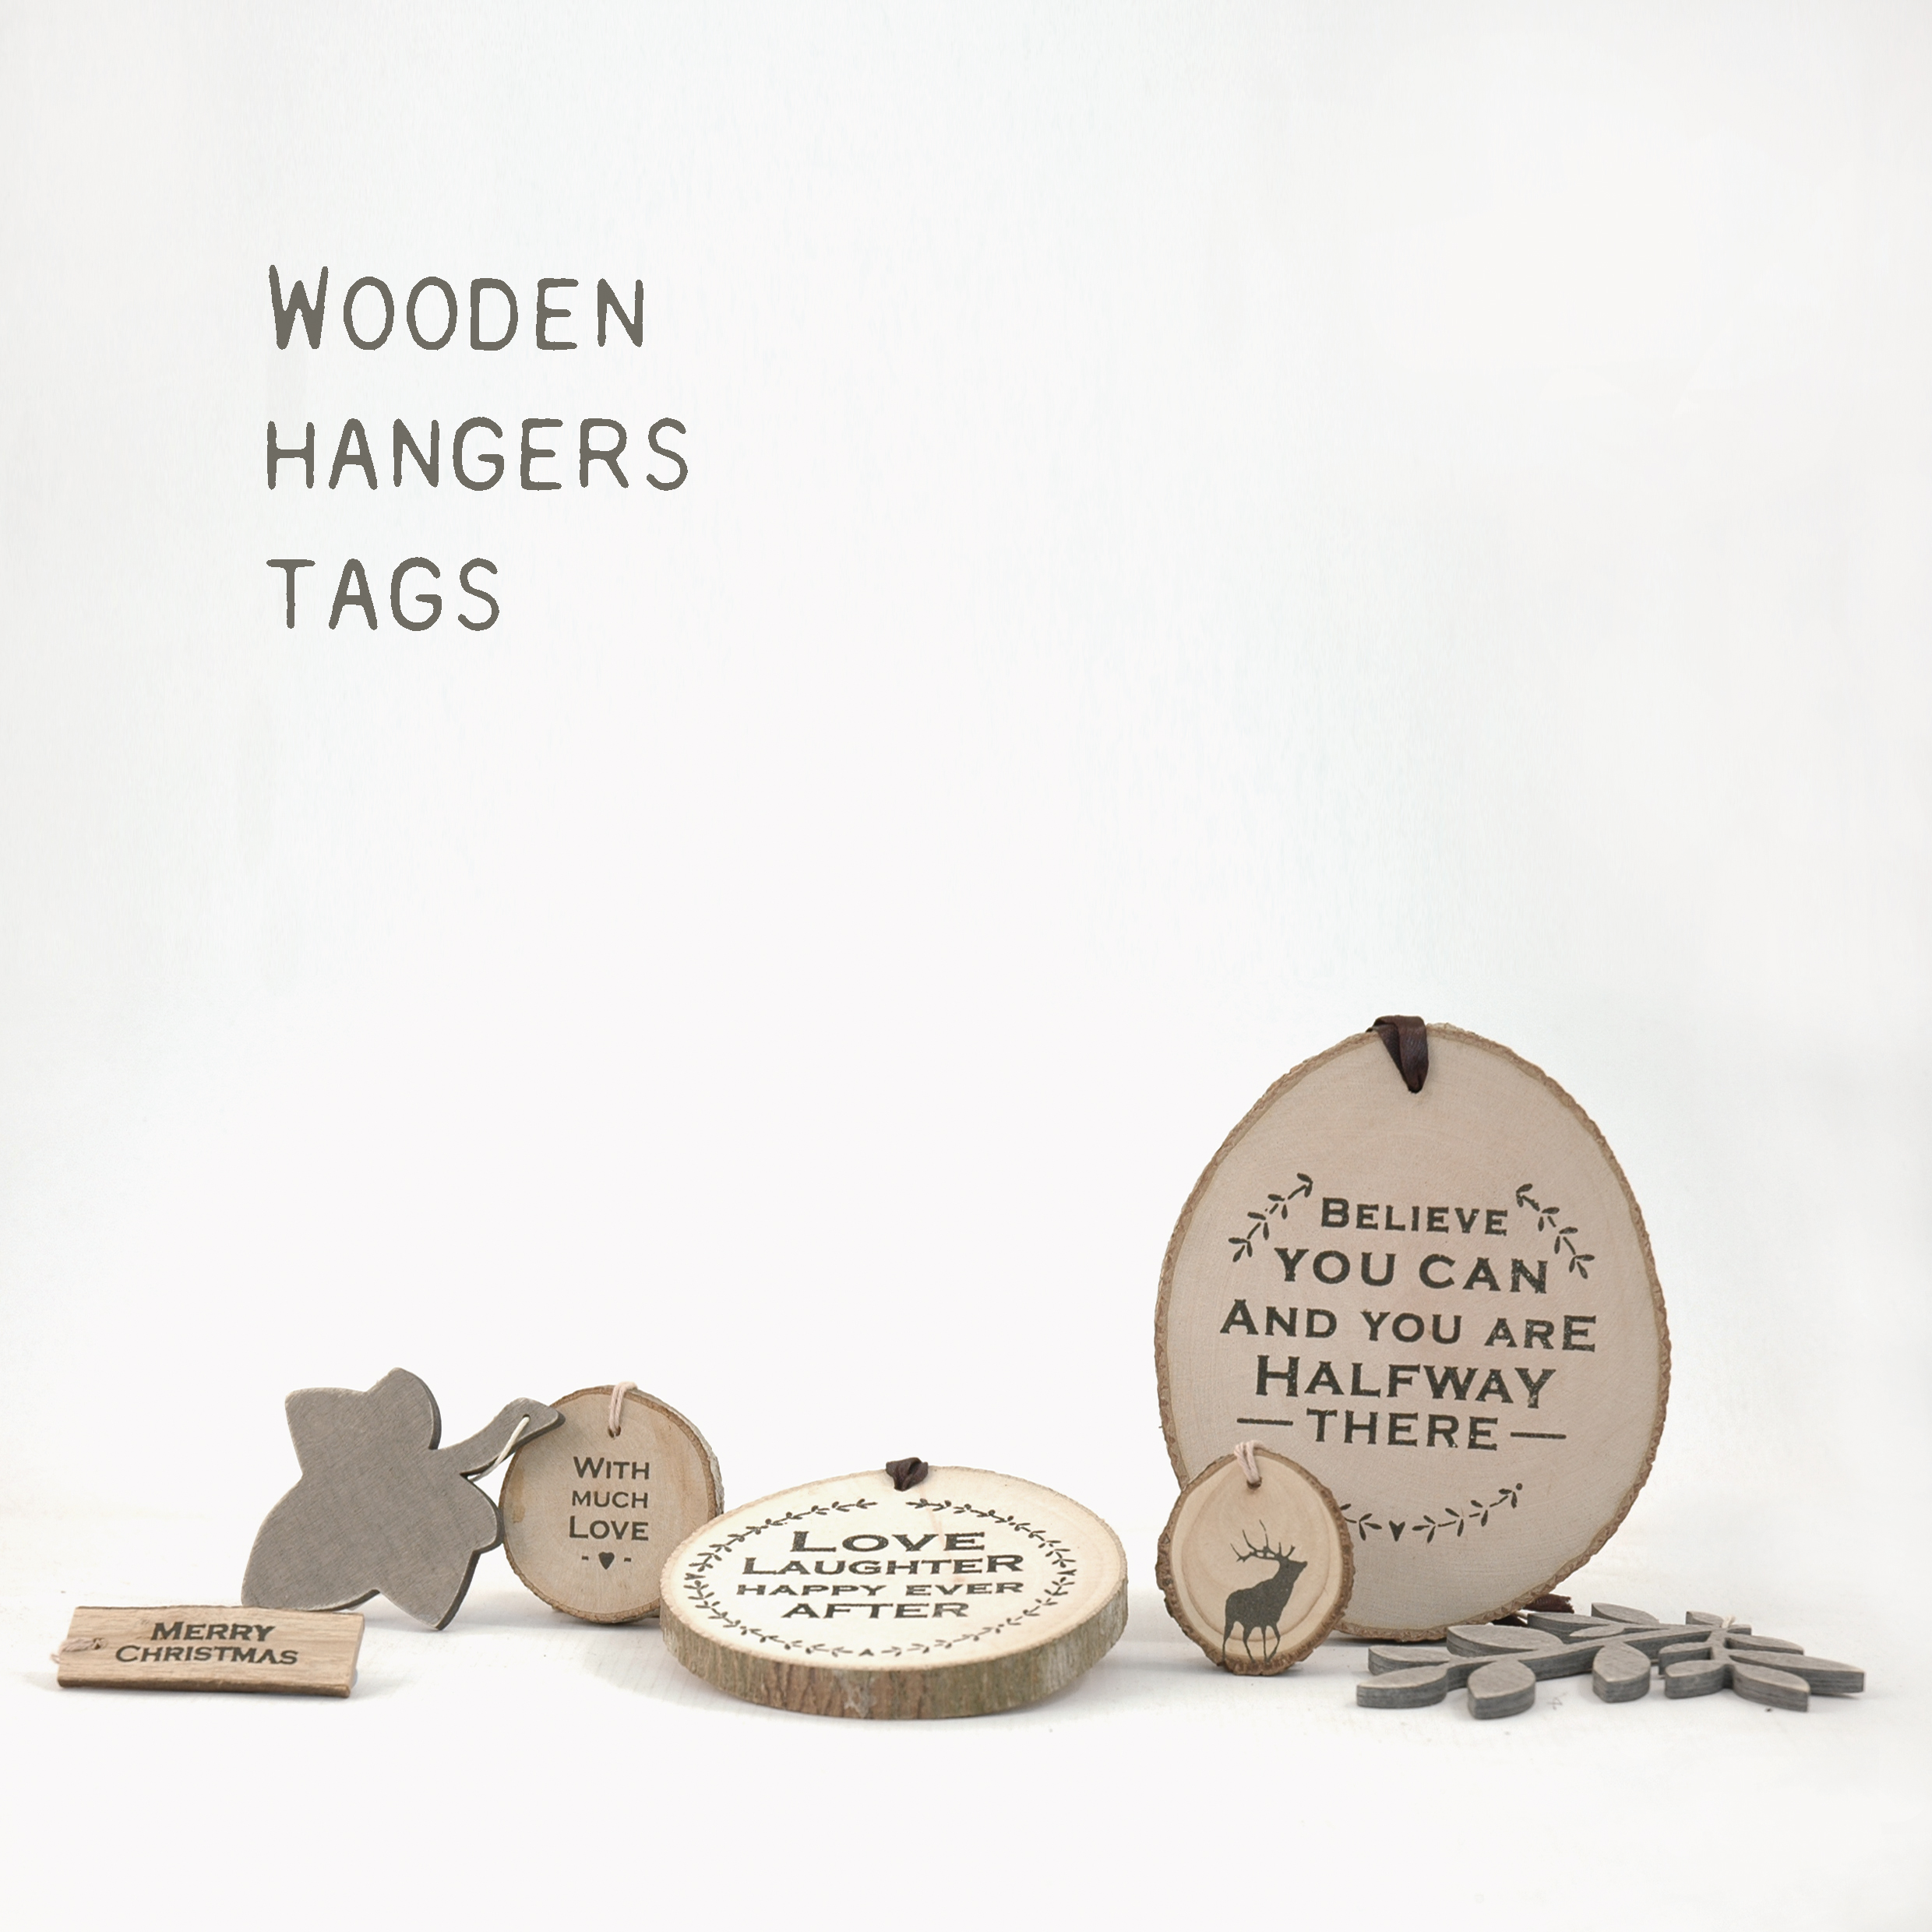 Tags & Wood hangers